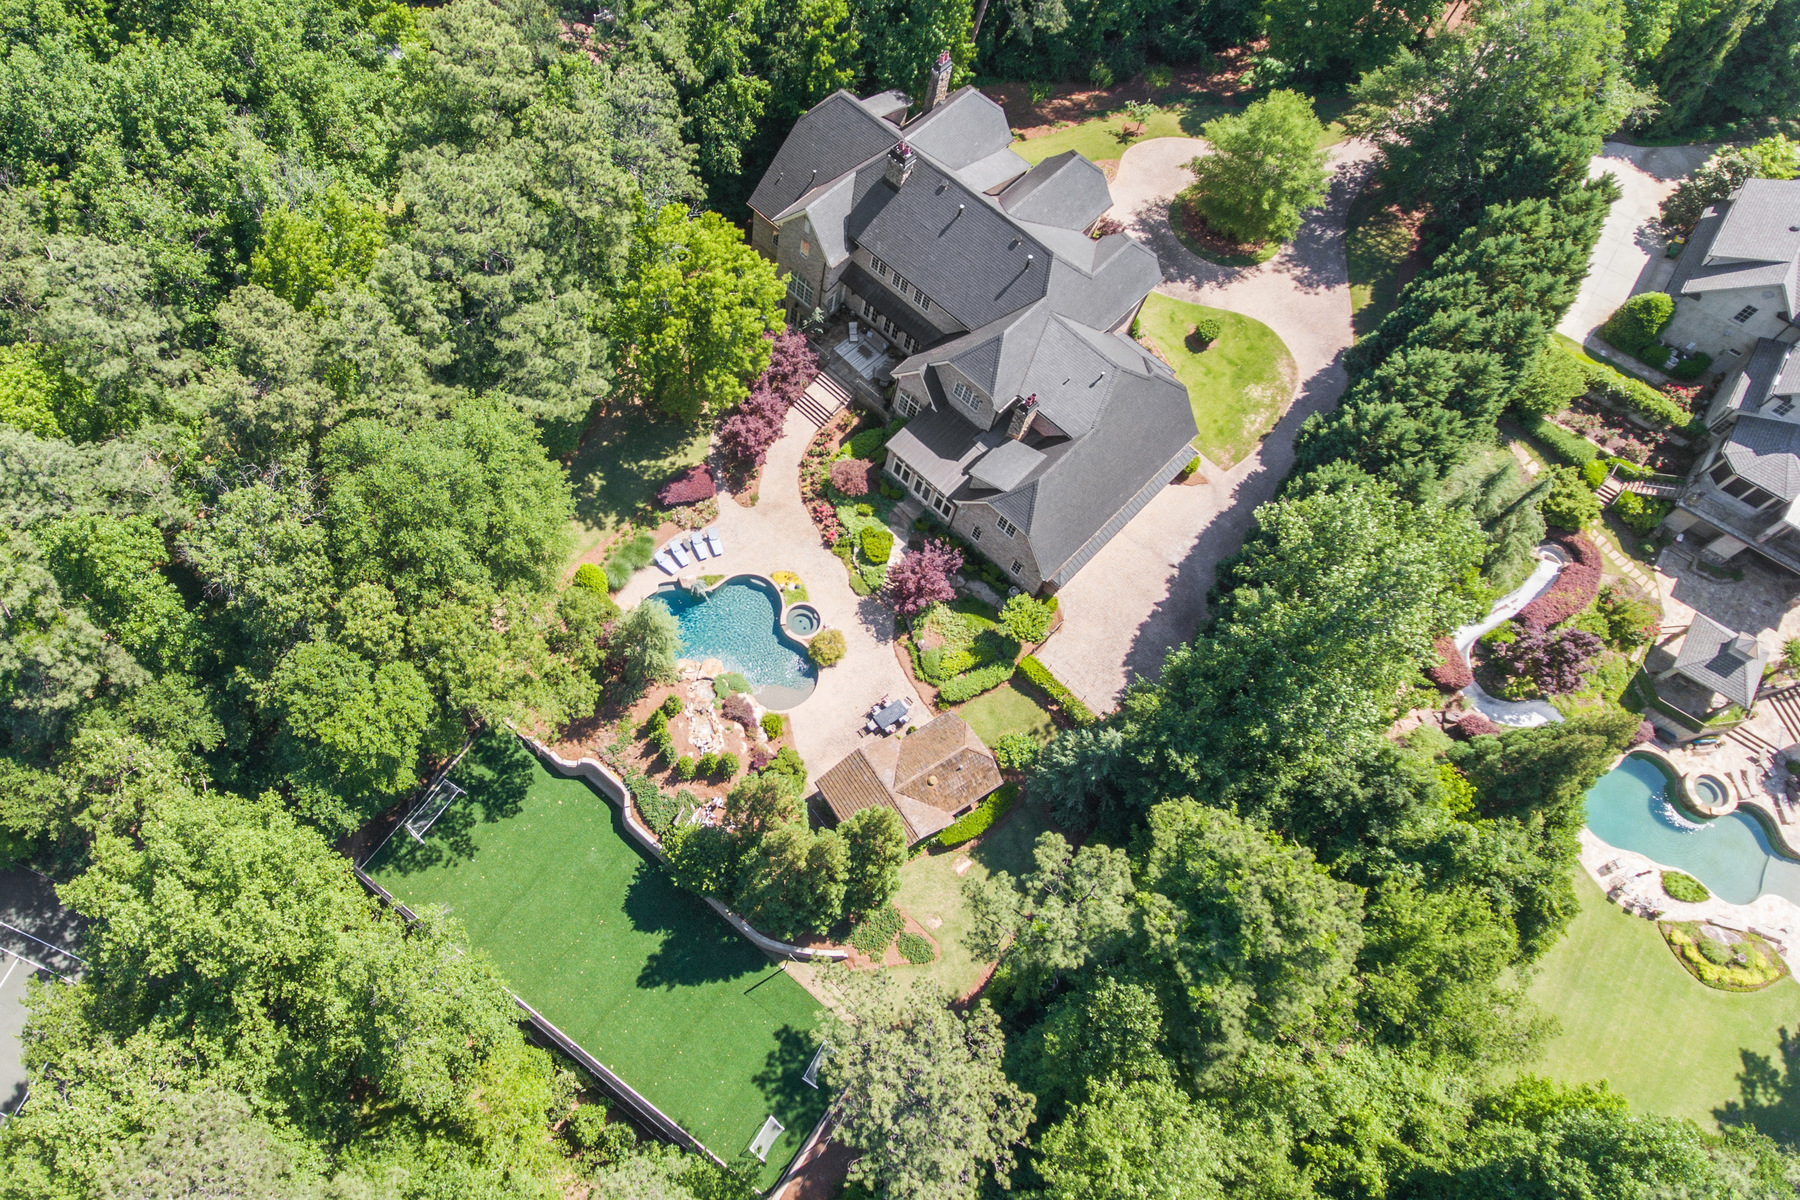 Частный односемейный дом для того Продажа на Exceptional Gated Estate Nestles on Two Acres in Prime Sandy Springs Location 5220 Northside Drive NW Atlanta, Джорджия, 30327 Соединенные Штаты